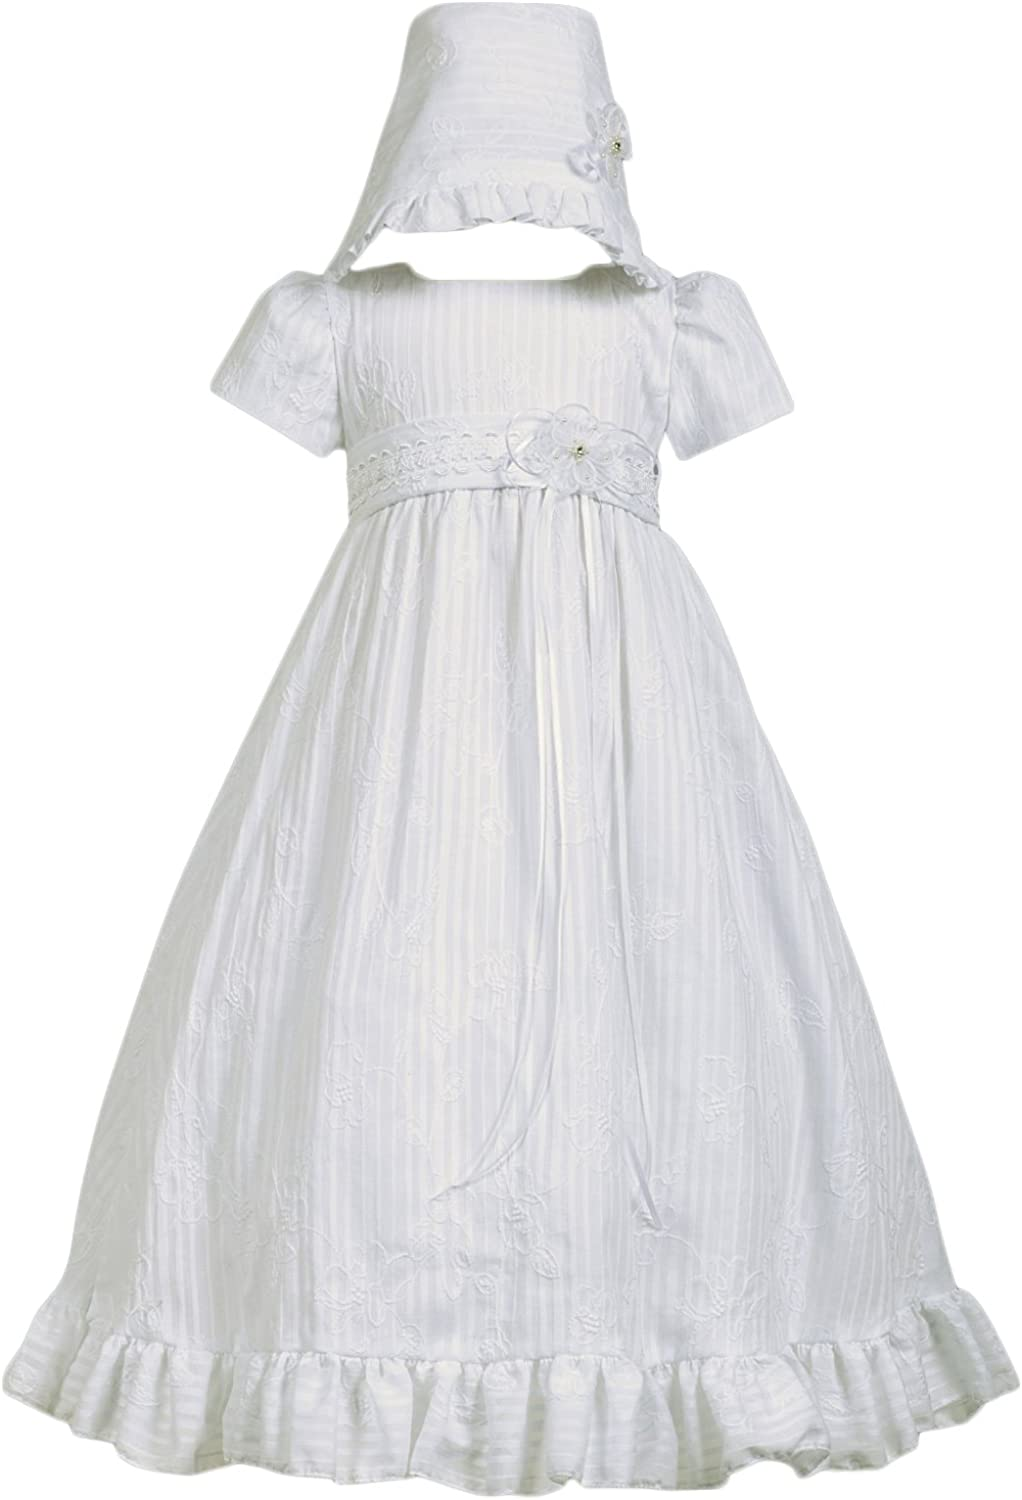 Baby Girls White Satin Tulle Christening Gown Baptism Dress Size 0-3 3-6 6-12 M